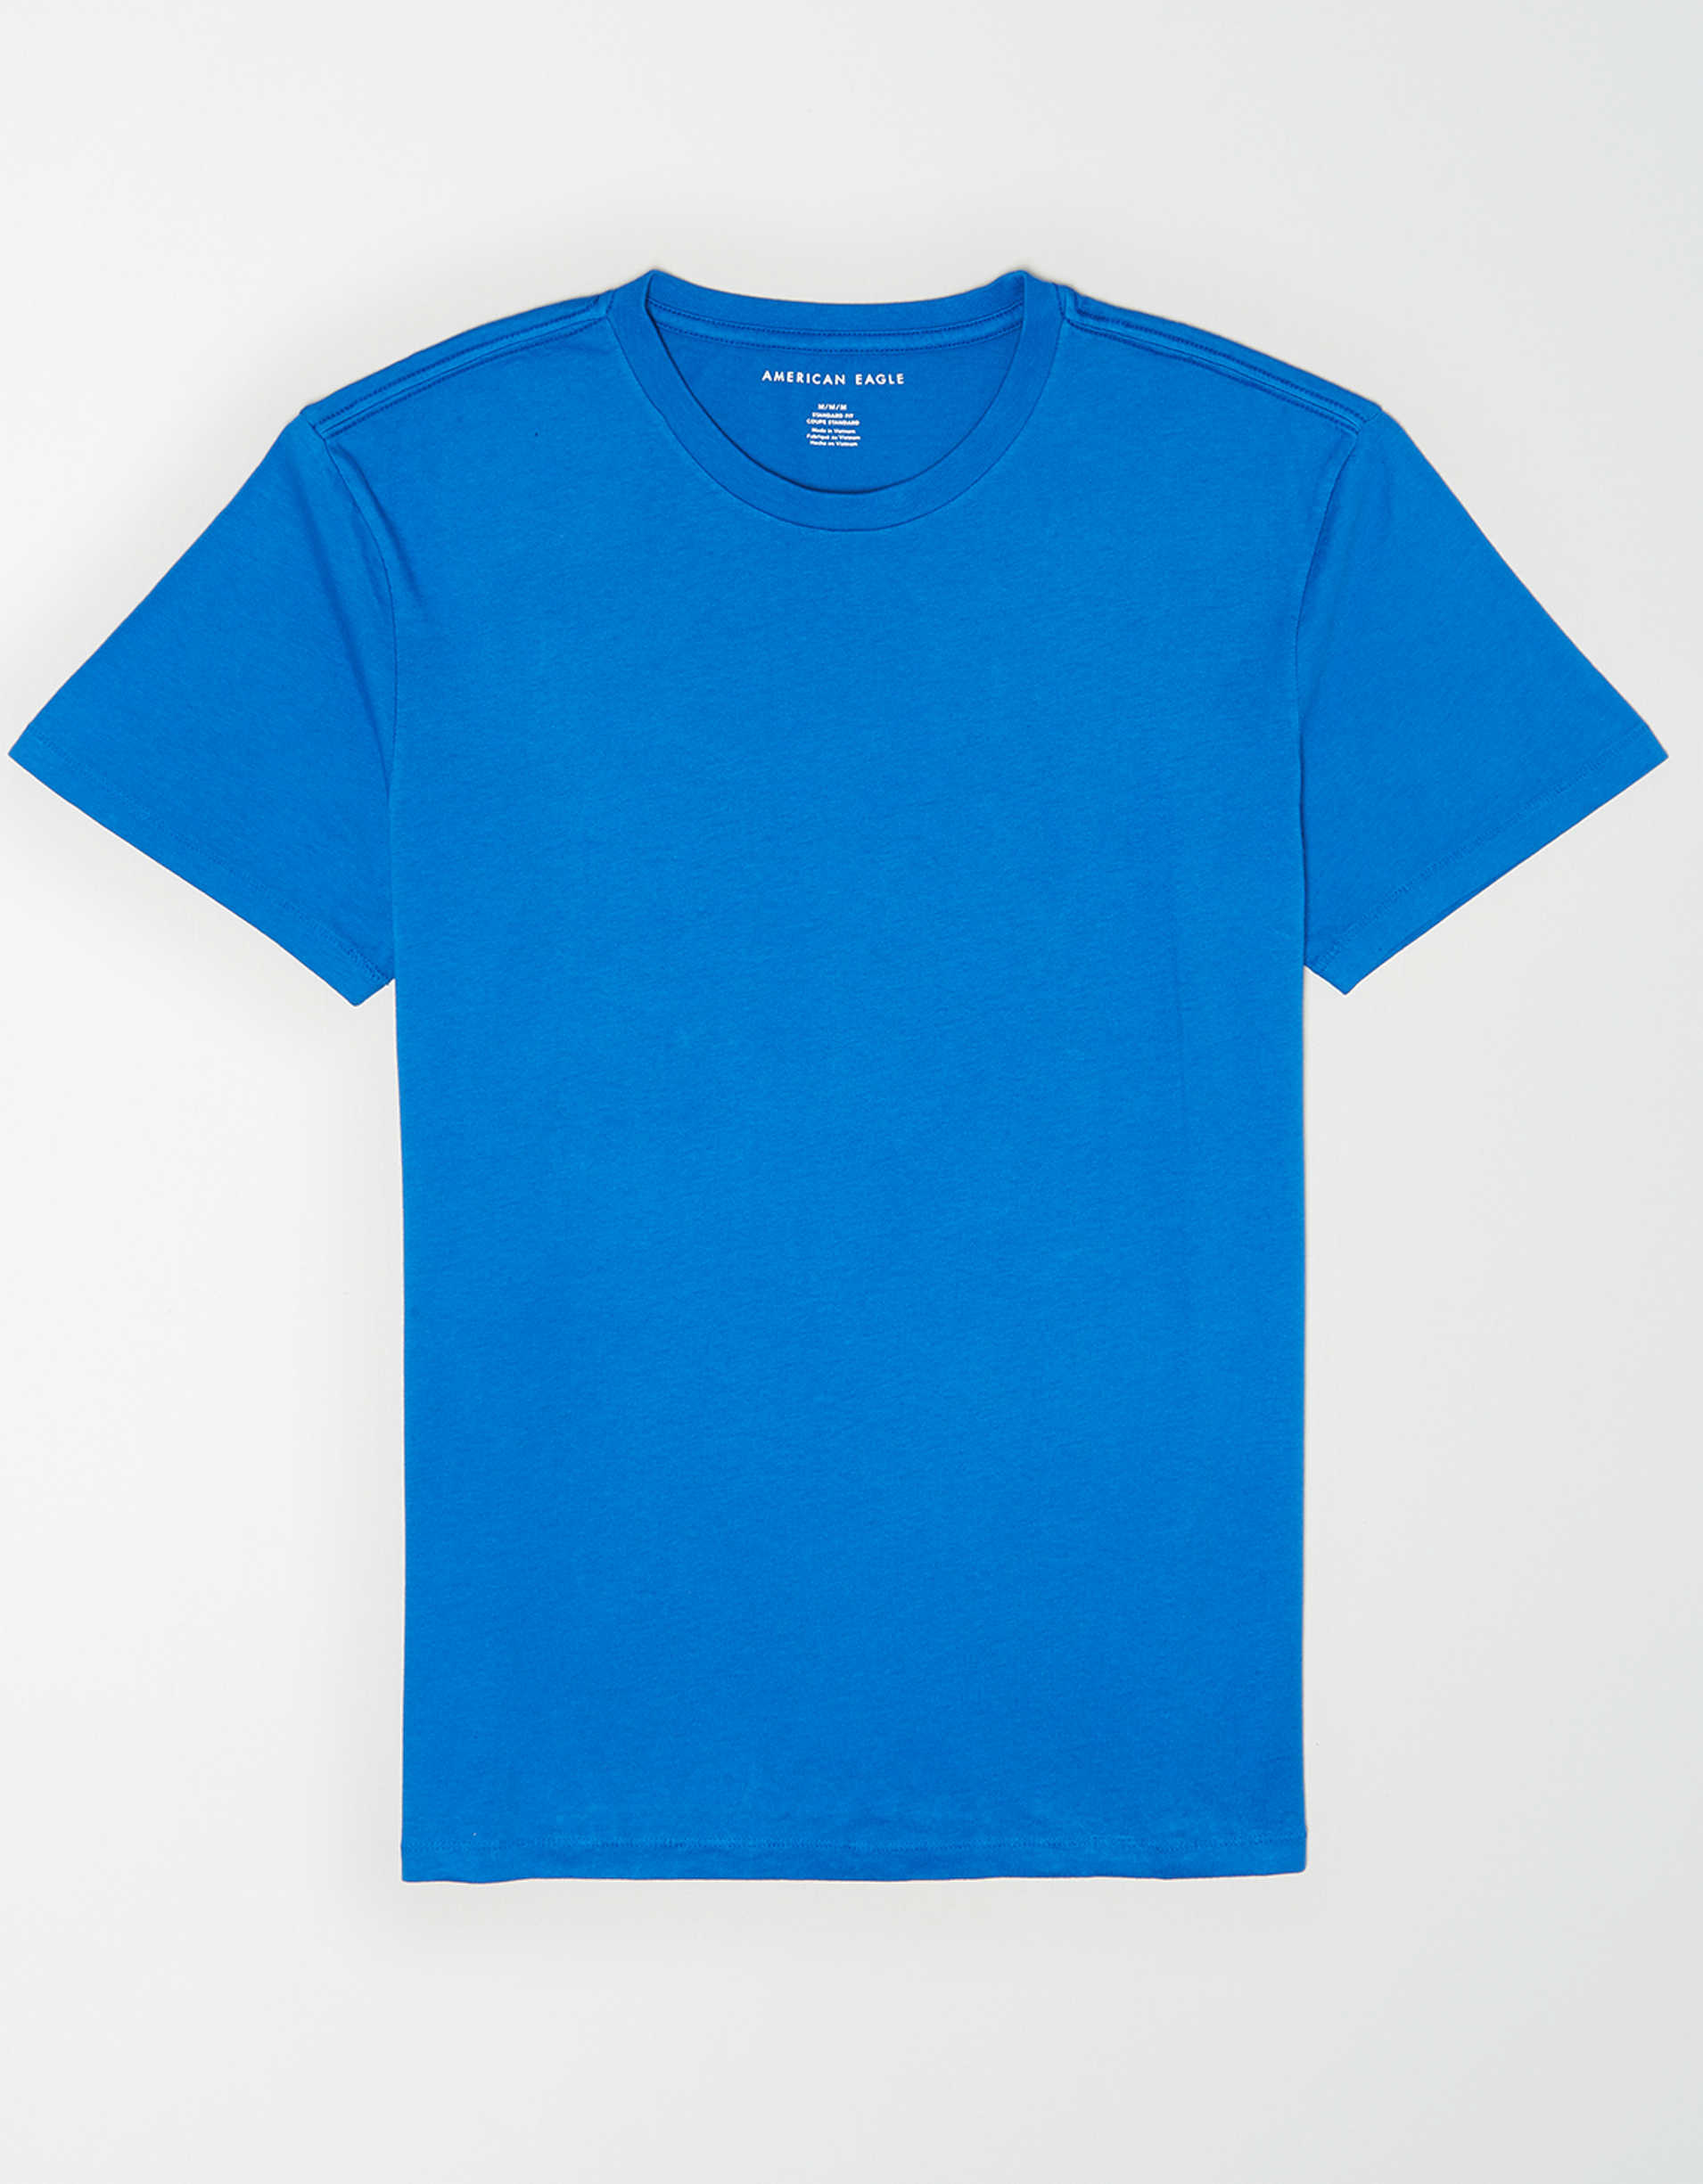 AE Super Soft Lightweight T-Shirt